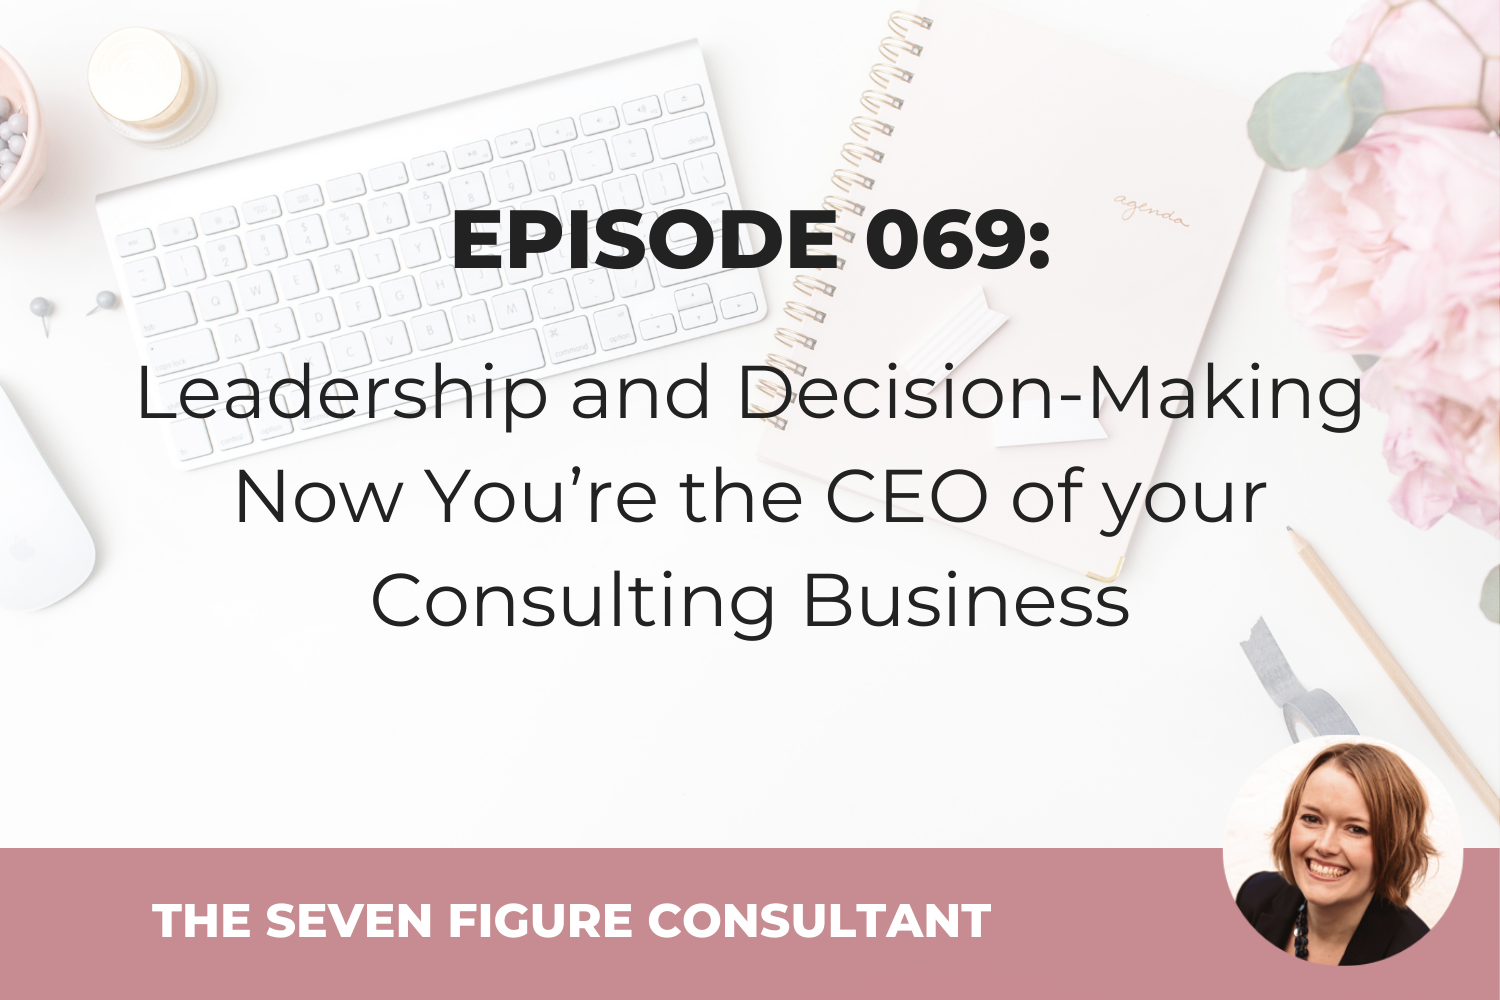 Episode 069: Leadership and Decision-Making Now You're the CEO of your Consulting Business